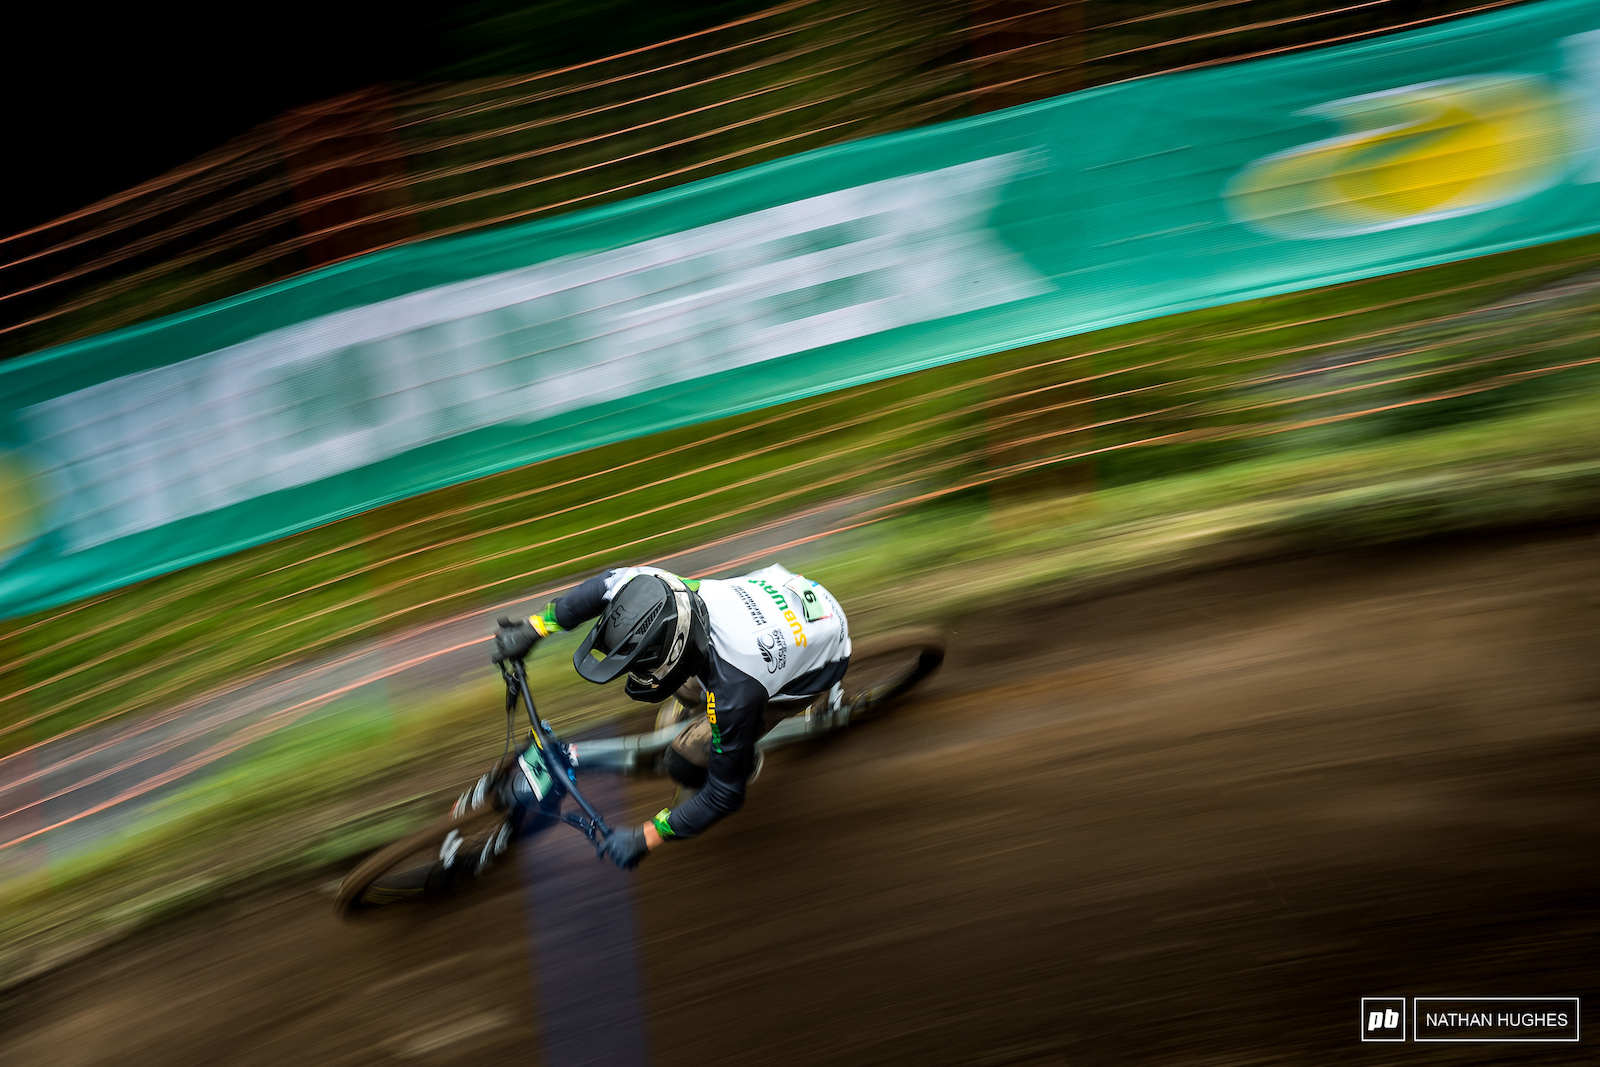 Tuhoto-Ariki Pene keen to show Val Di Sole was no fluke hit the podium again just 1.2 short of the win for 3rd place.